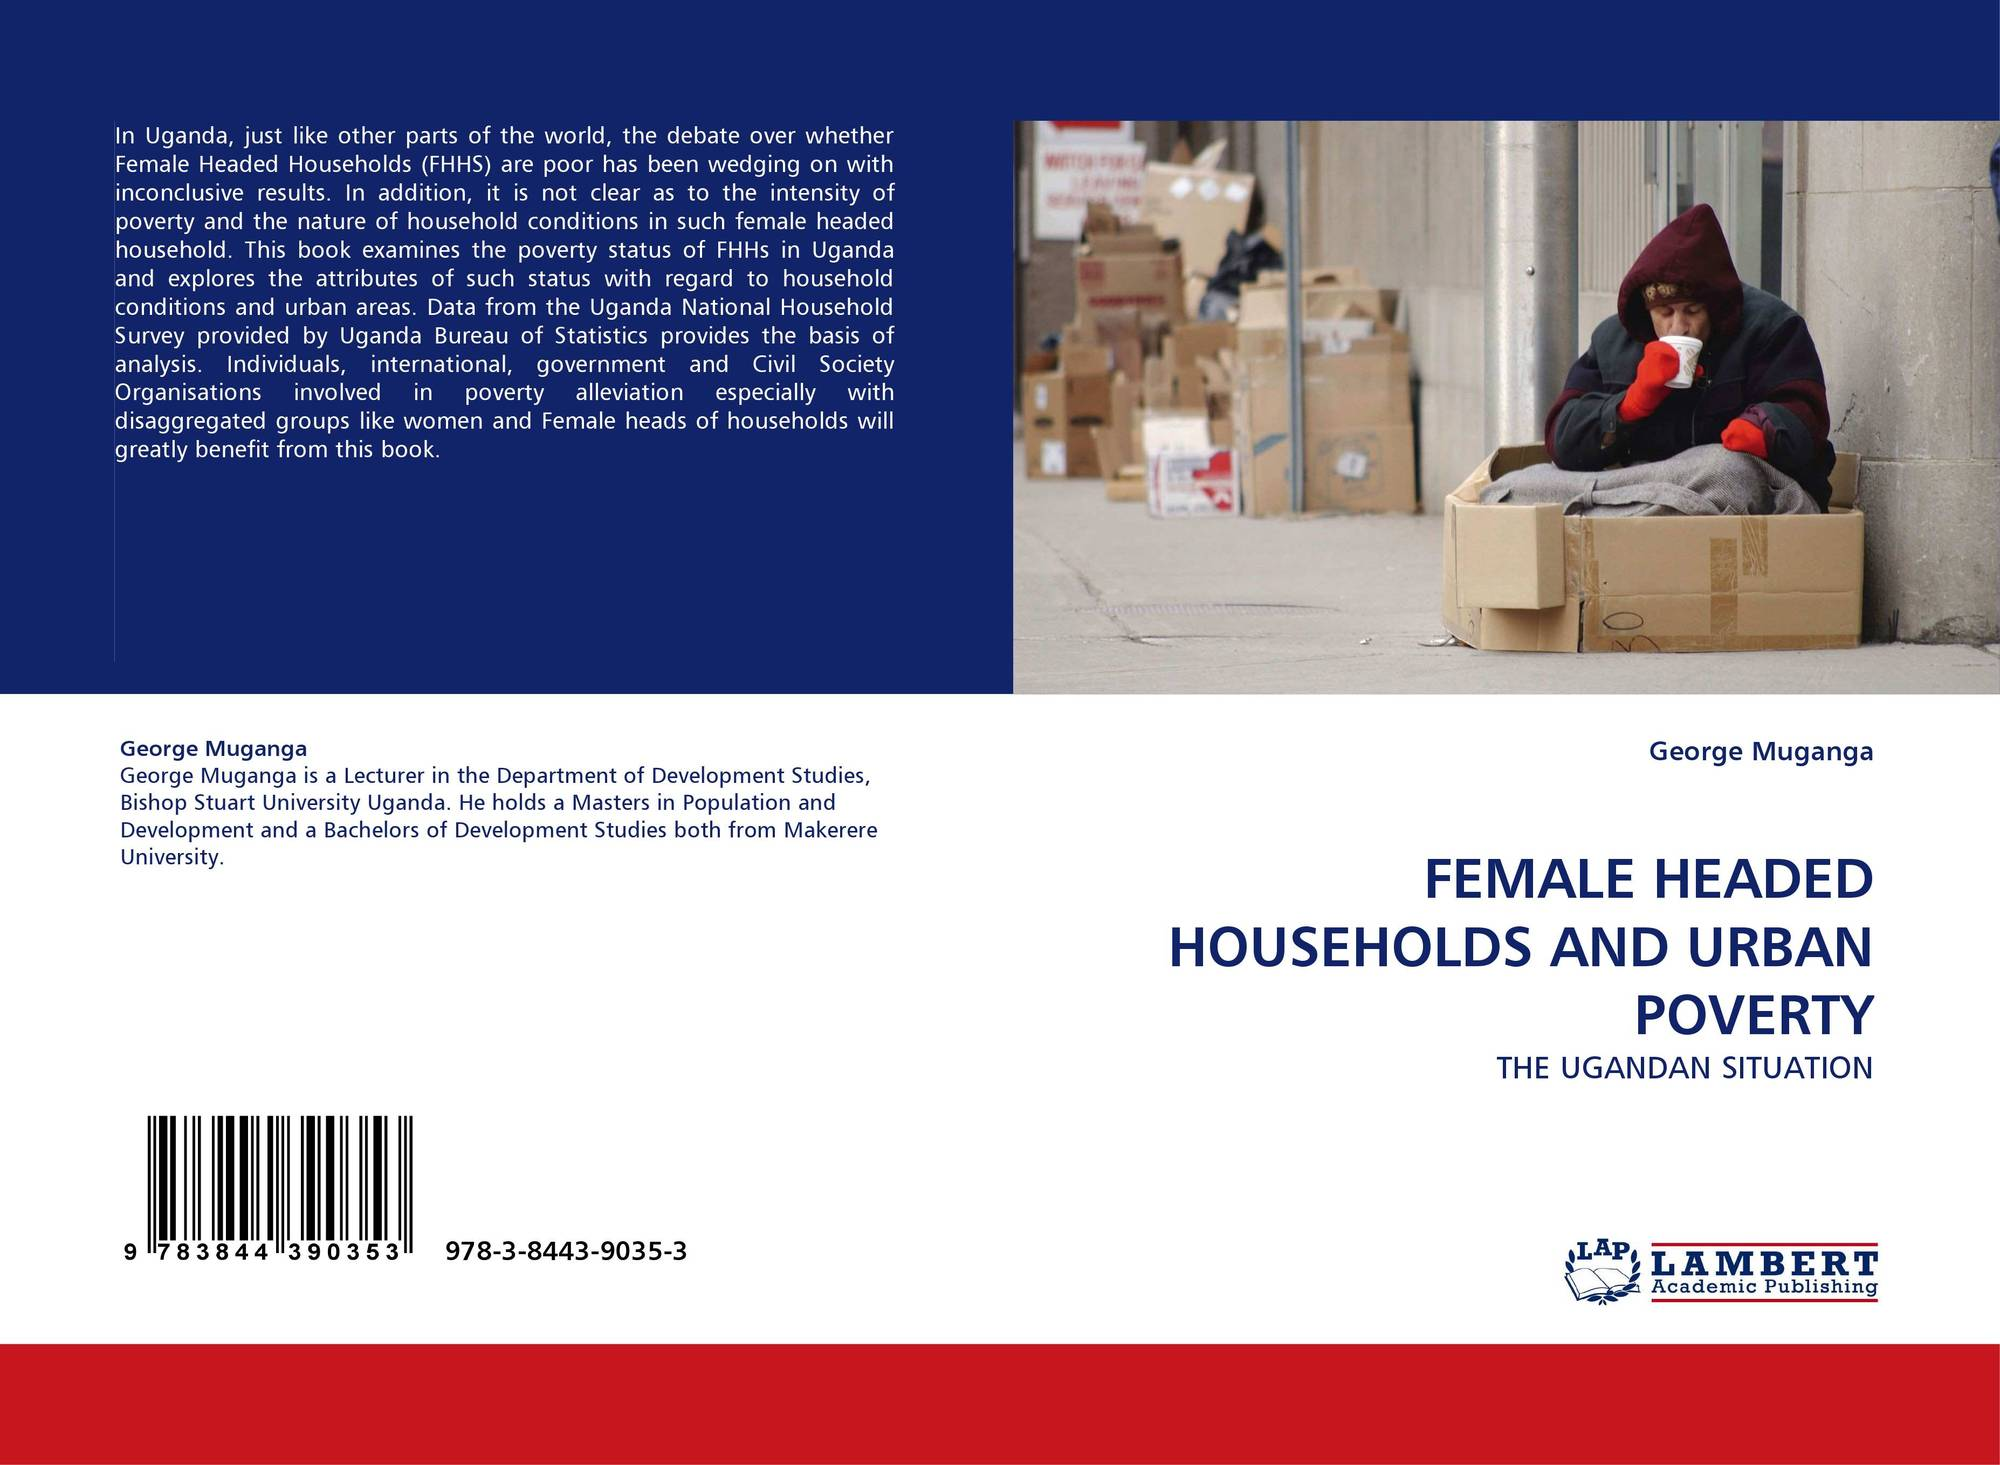 FEMALE HEADED HOUSEHOLDS AND URBAN POVERTY, 978-3-8443-9035